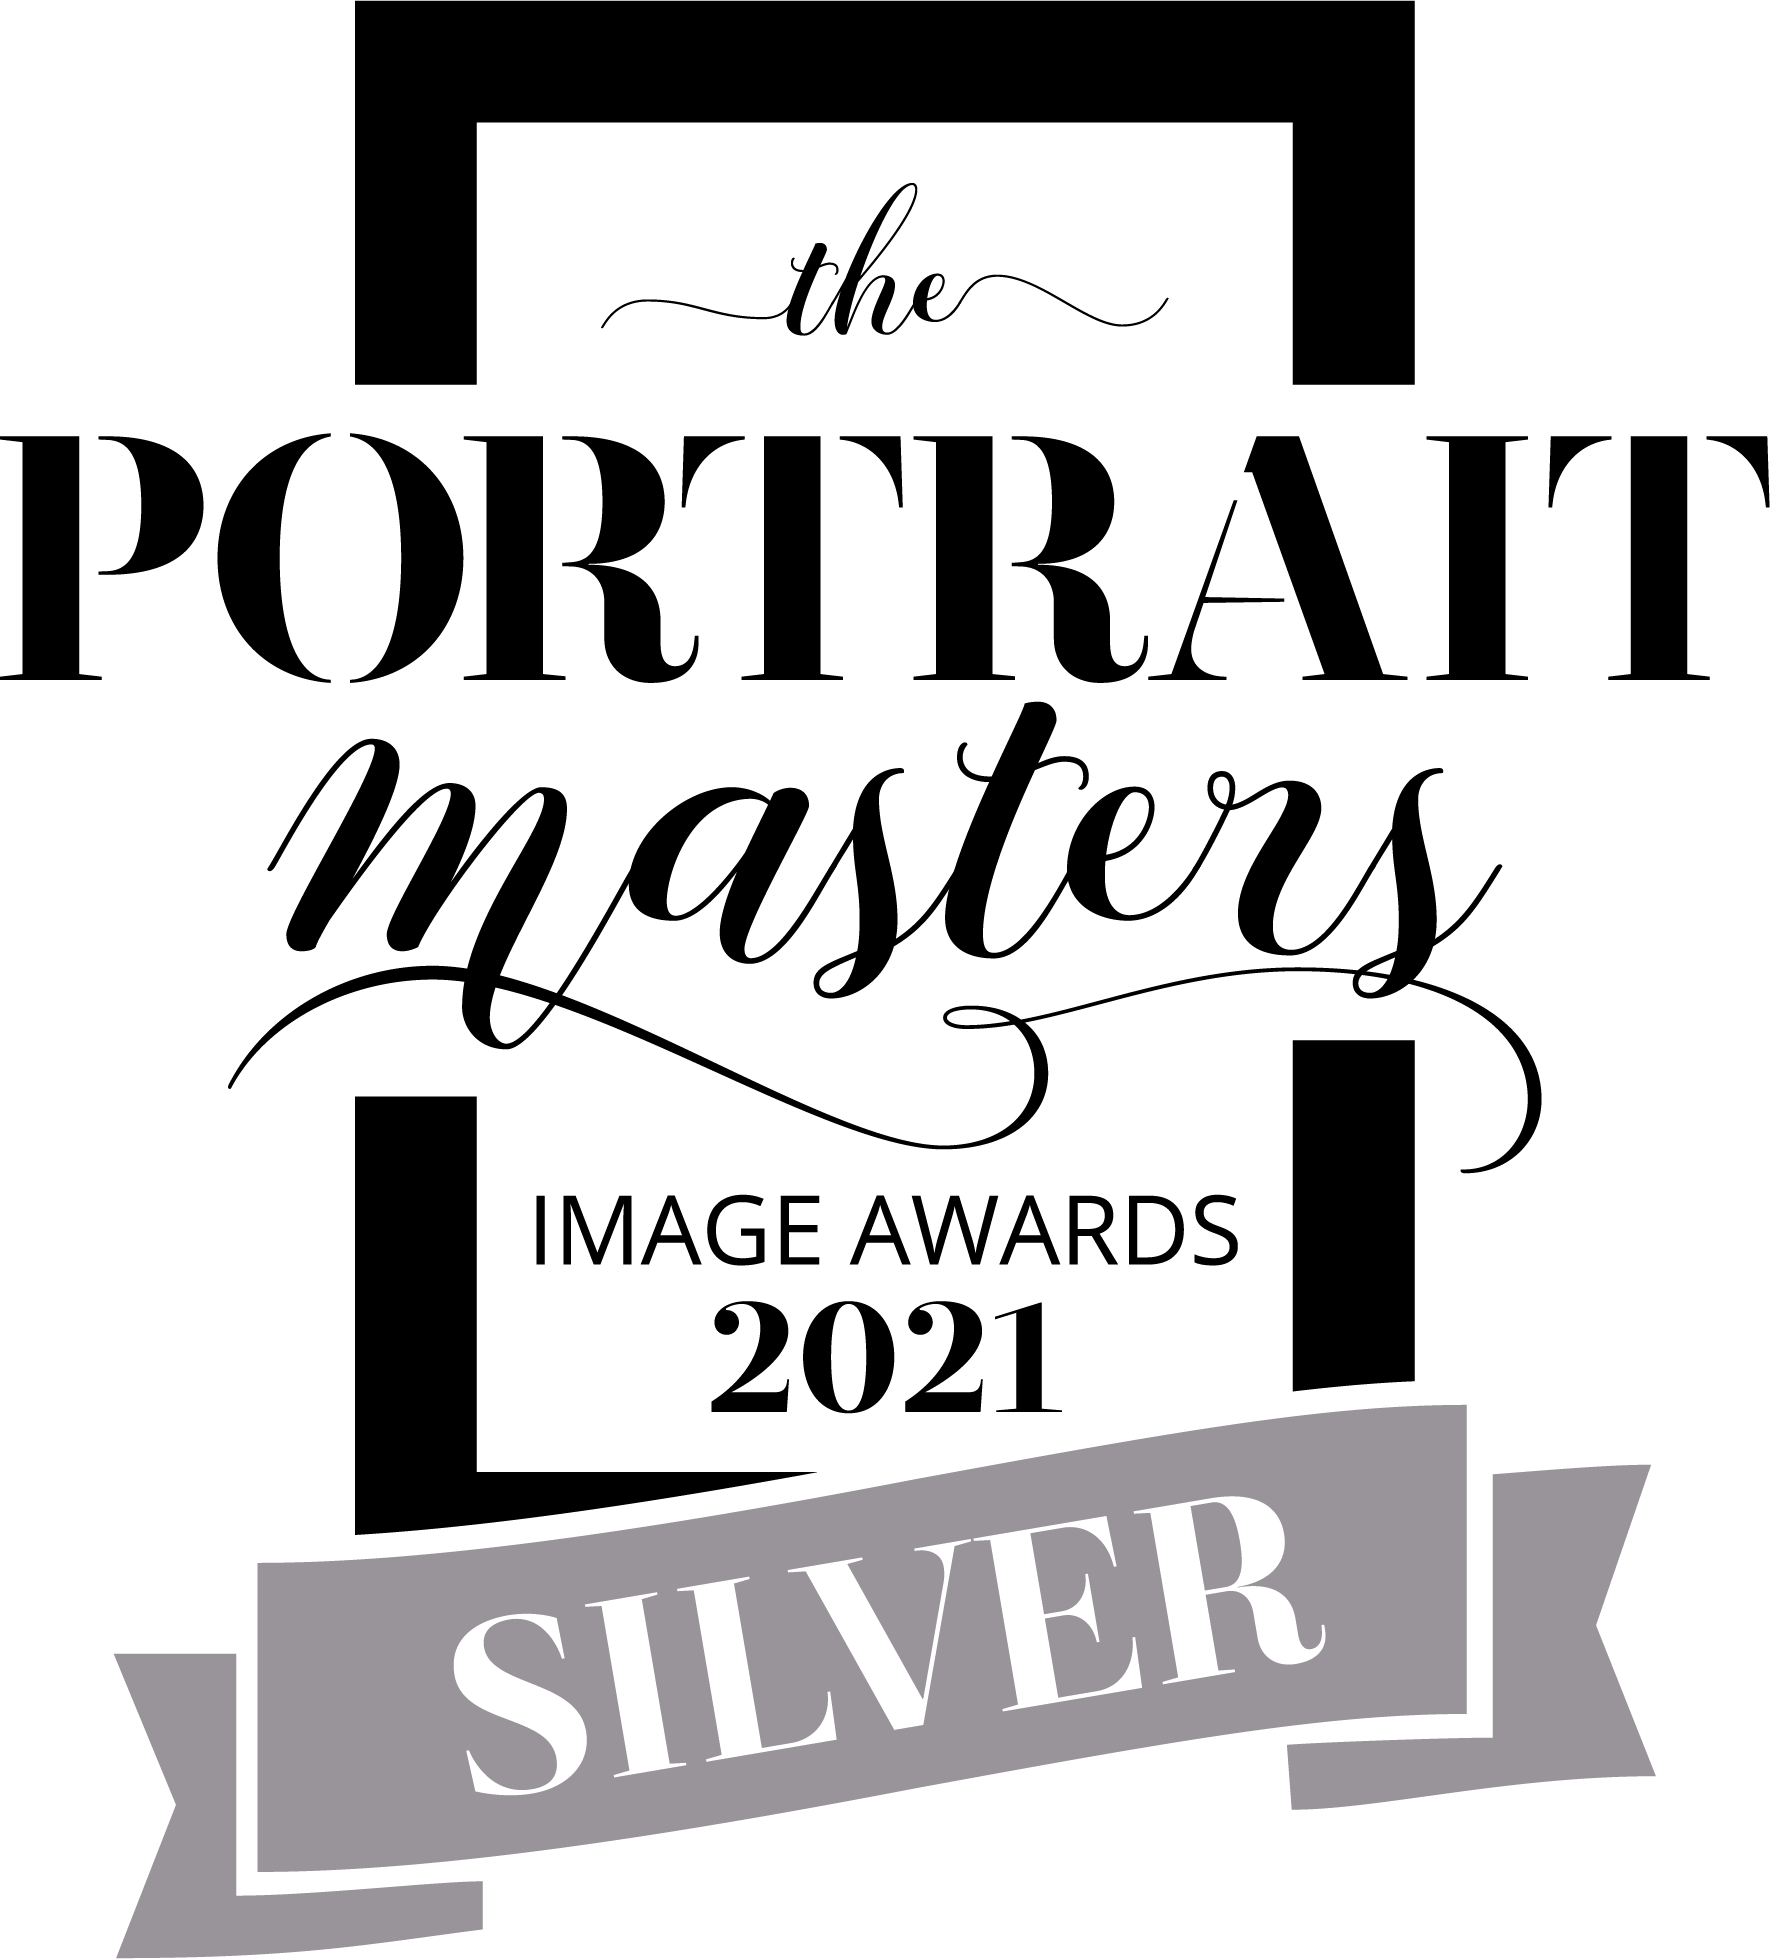 Digital Award for the Portrait Master's Photography Competion